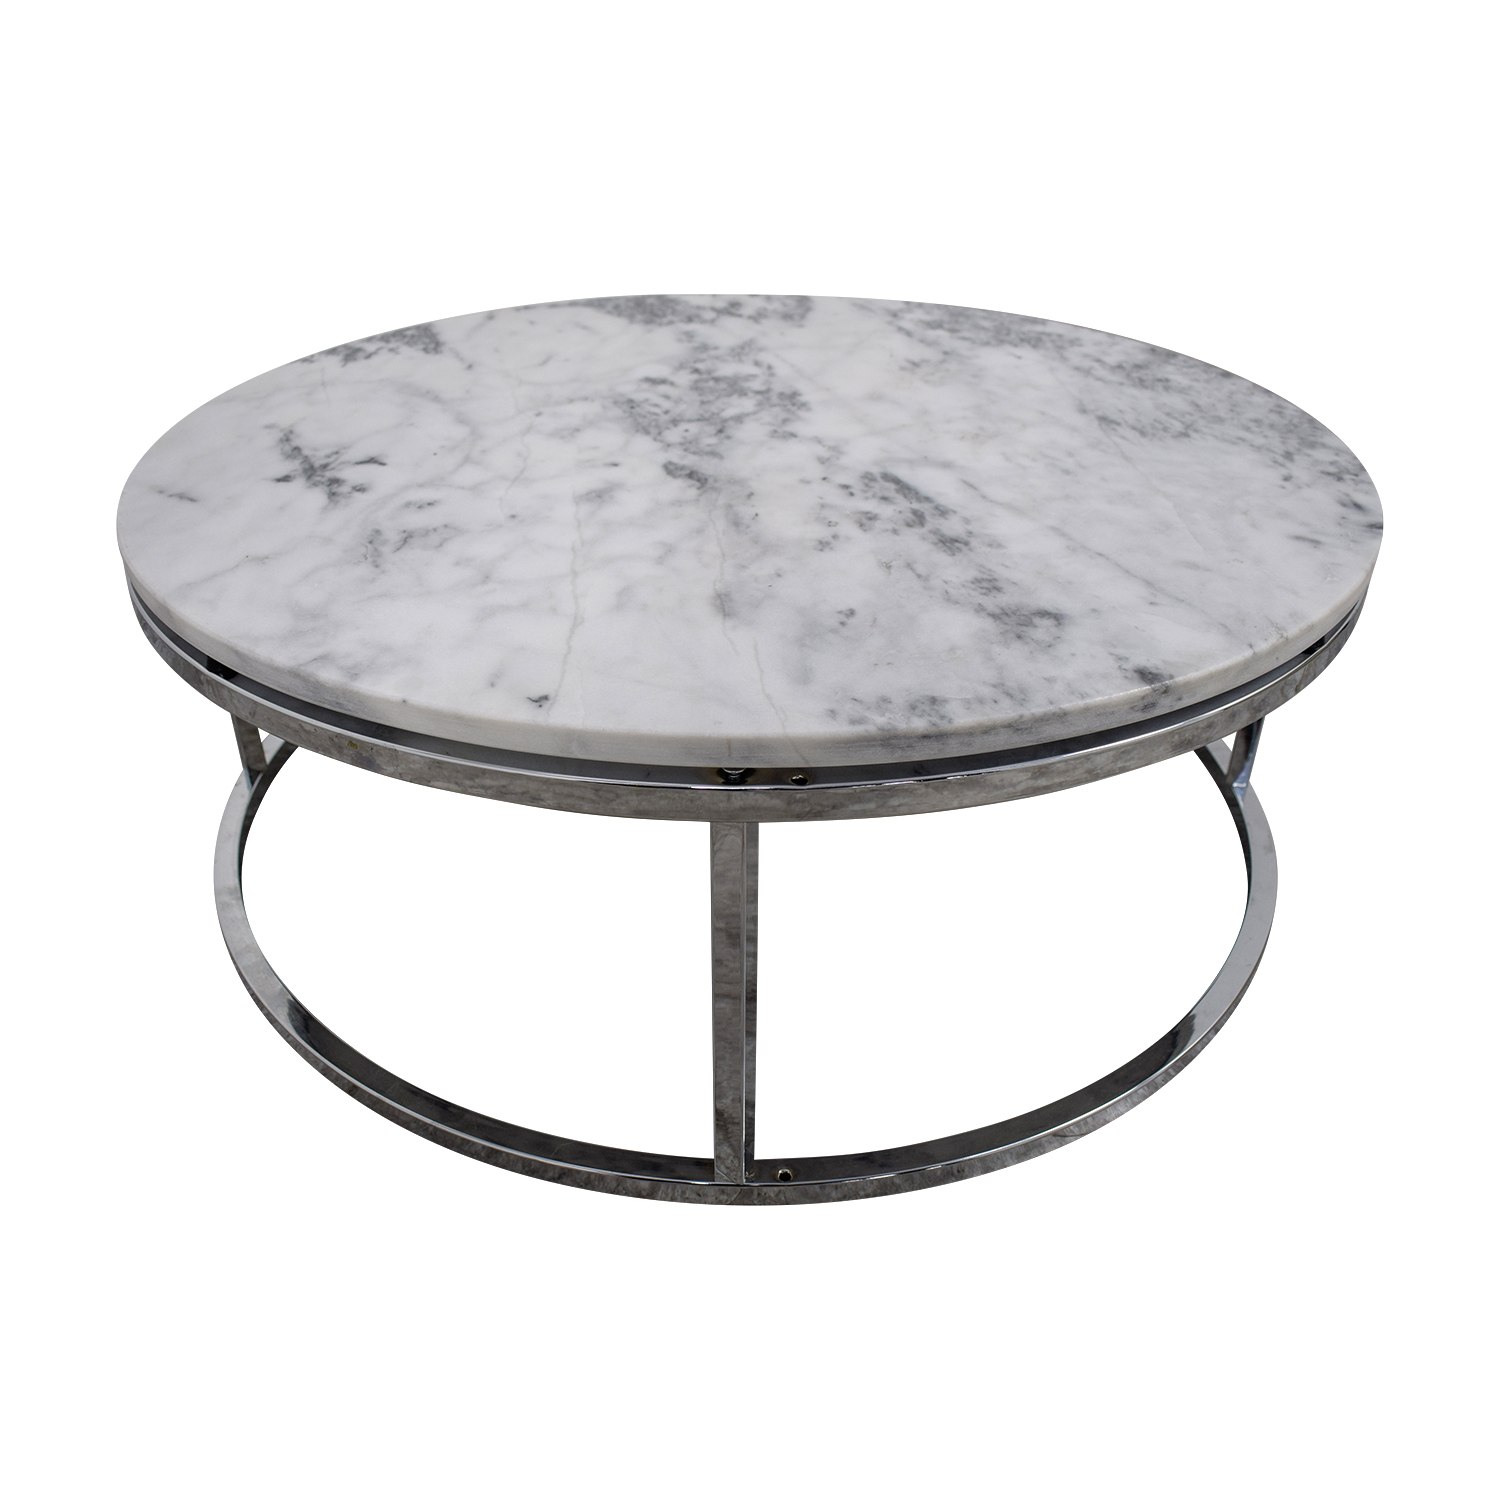 57 Off Cb2 Cb2 Round White Marble Coffee Table Tables